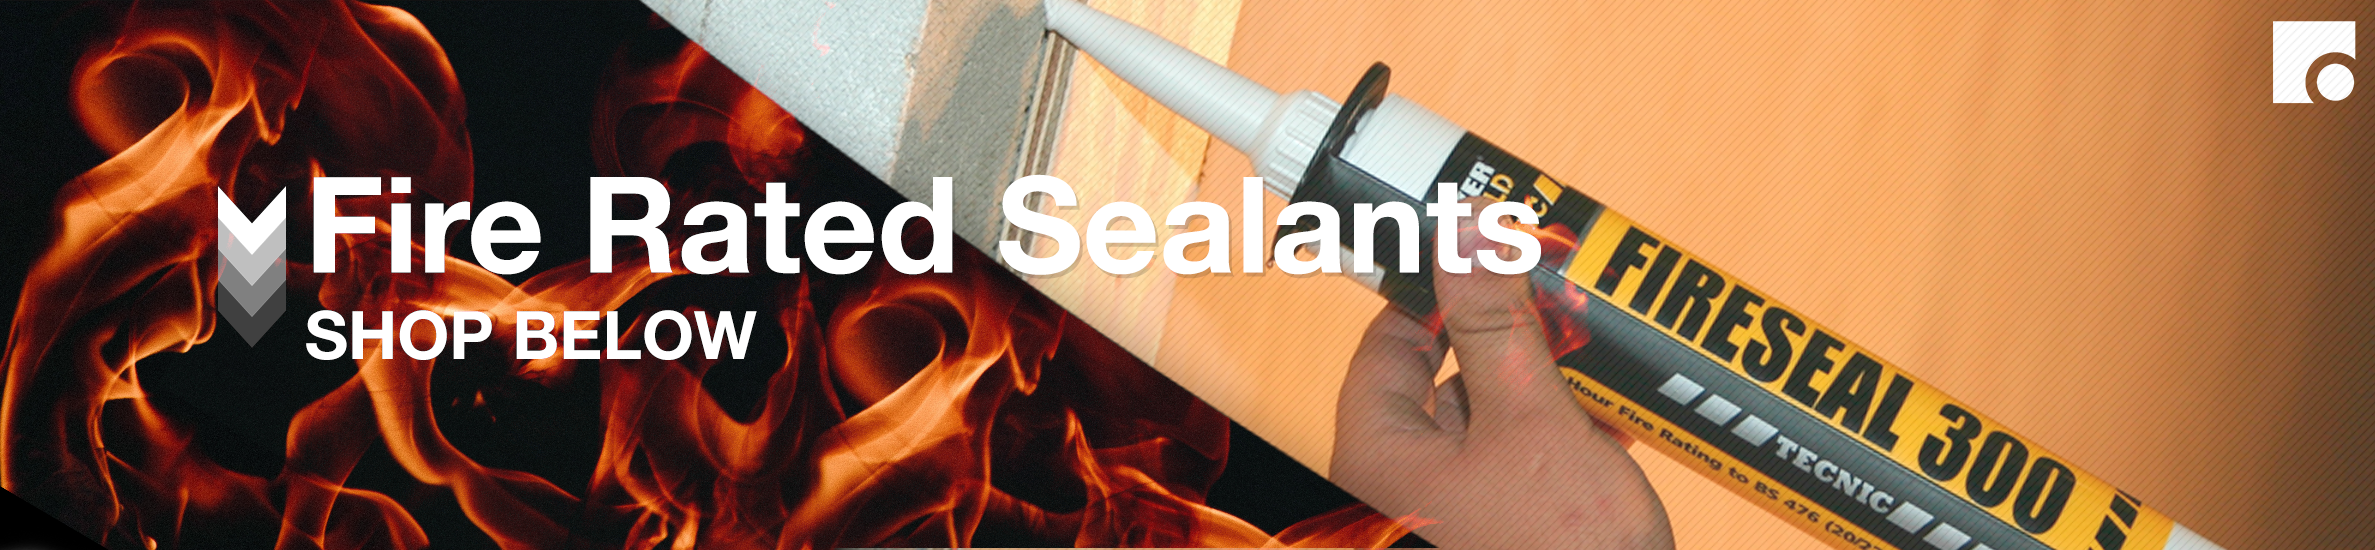 Fire Rated Sealants